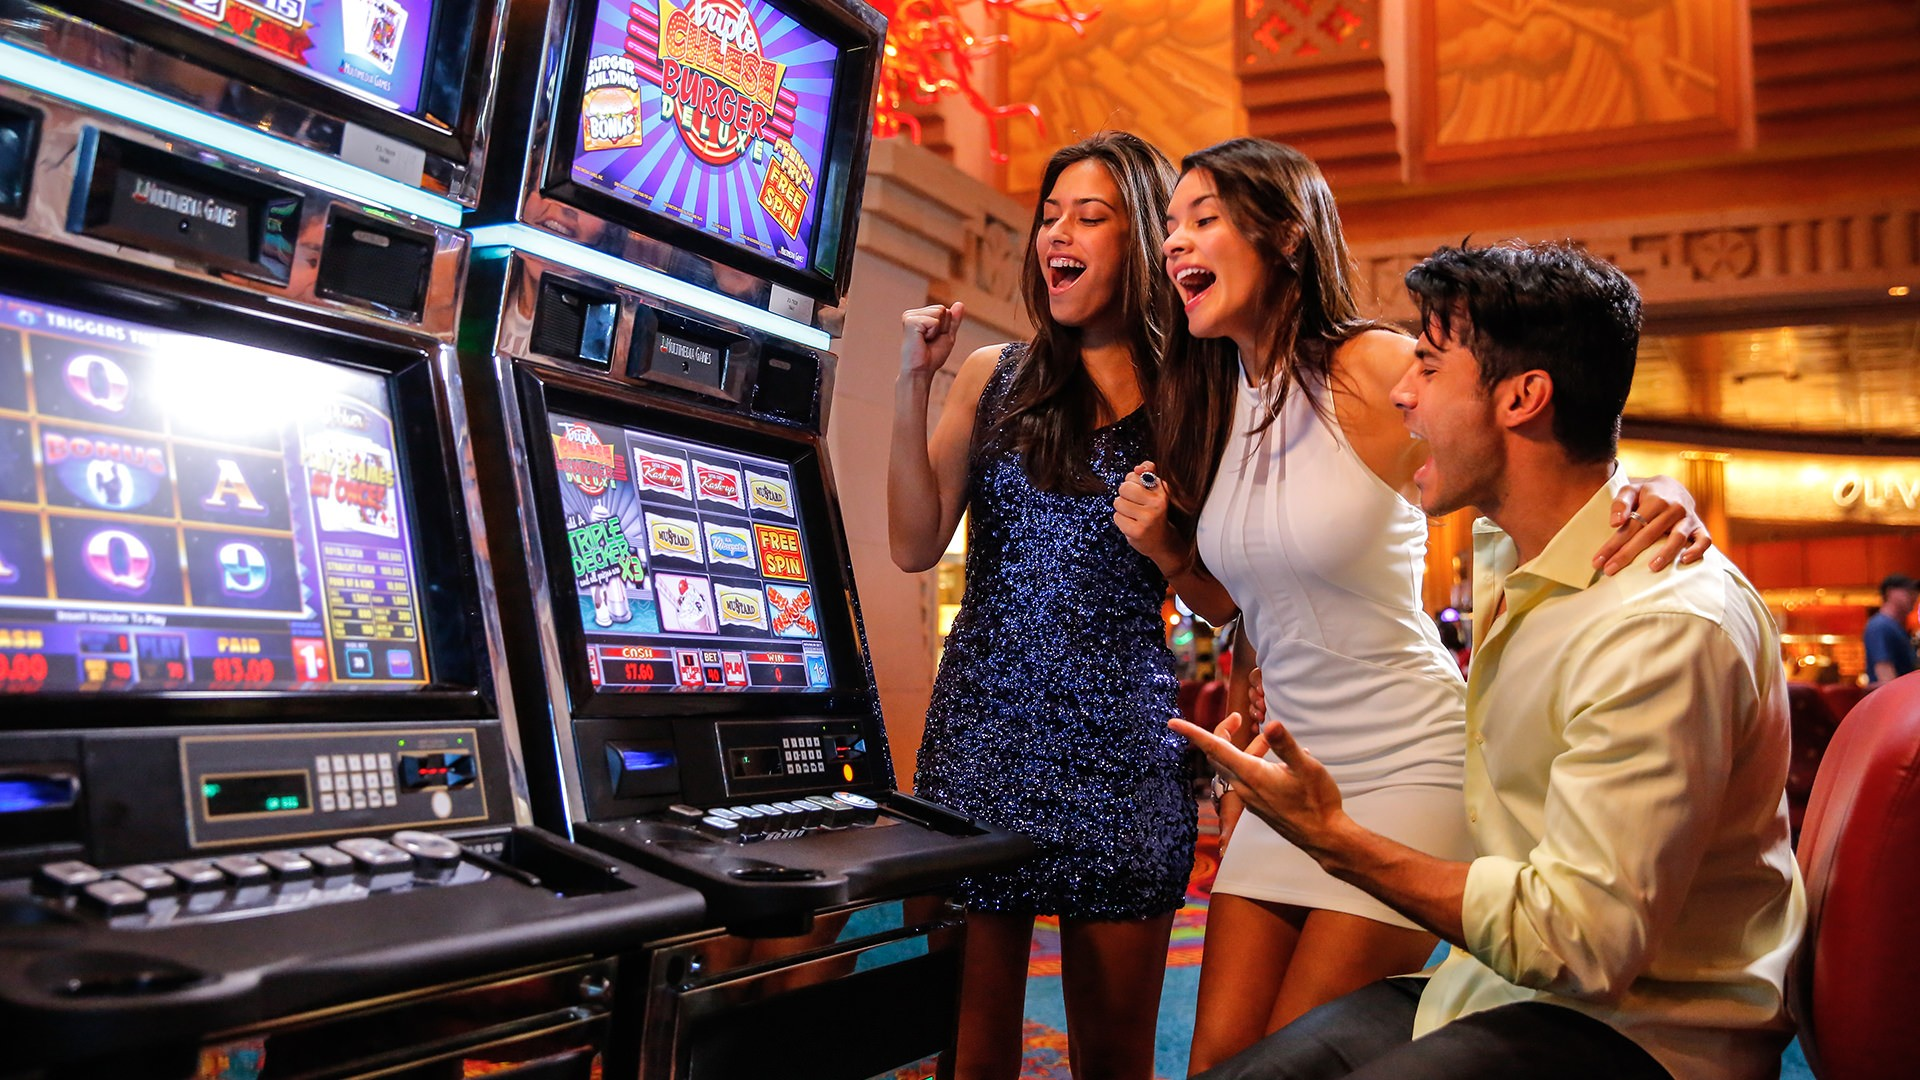 Online Casinos are an Easy Way to Start Playing